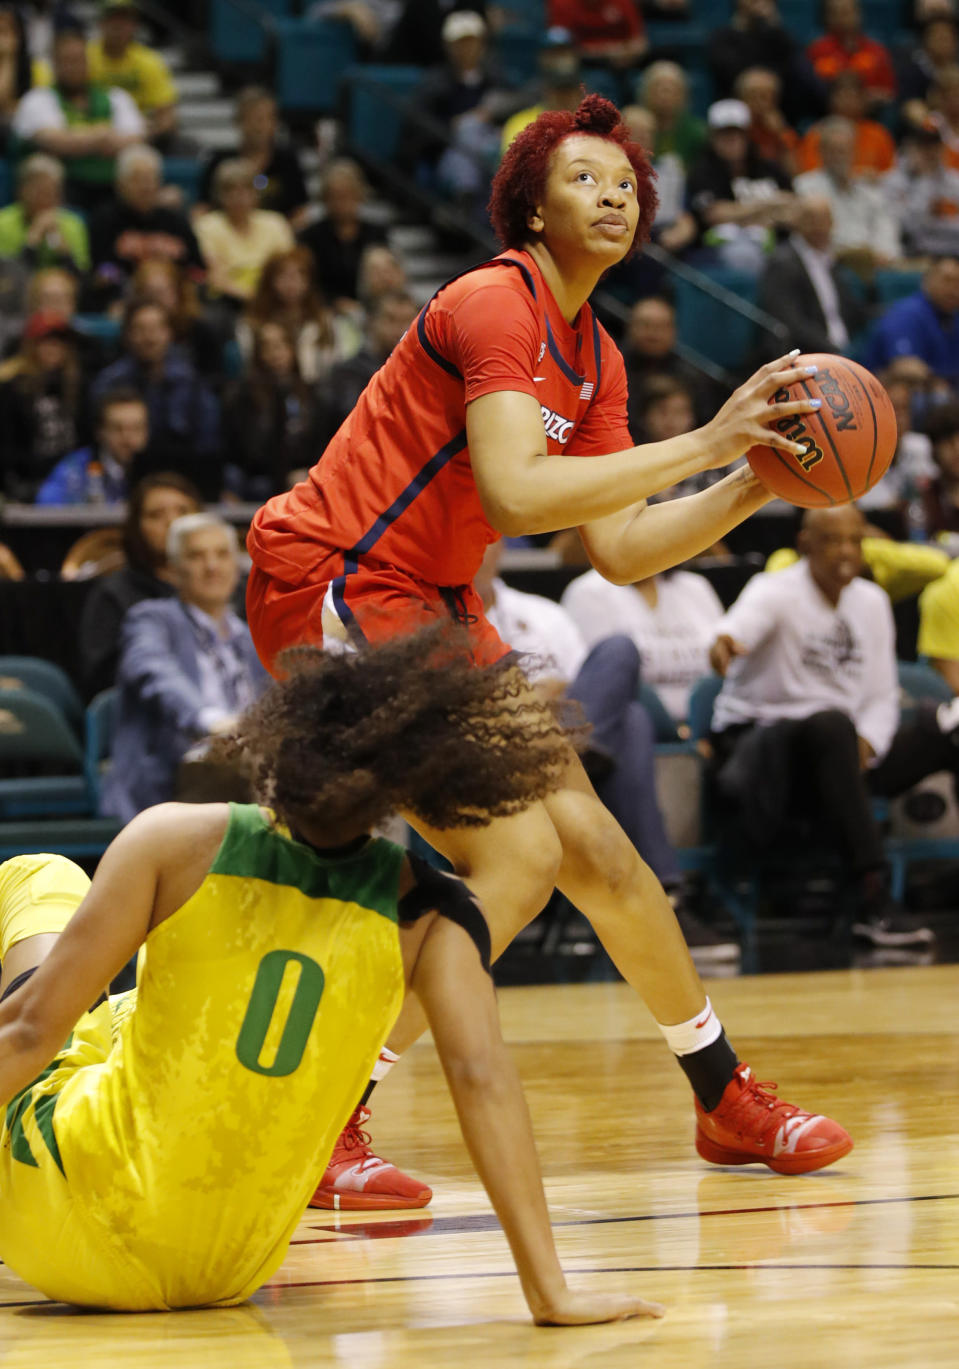 Arizona's Semaj Smith shoots over Oregon's Satou Sabally during the first half of an NCAA college basketball game at the Pac-12 women's tournament Friday, March 8, 2019, in Las Vegas. (AP Photo/John Locher)